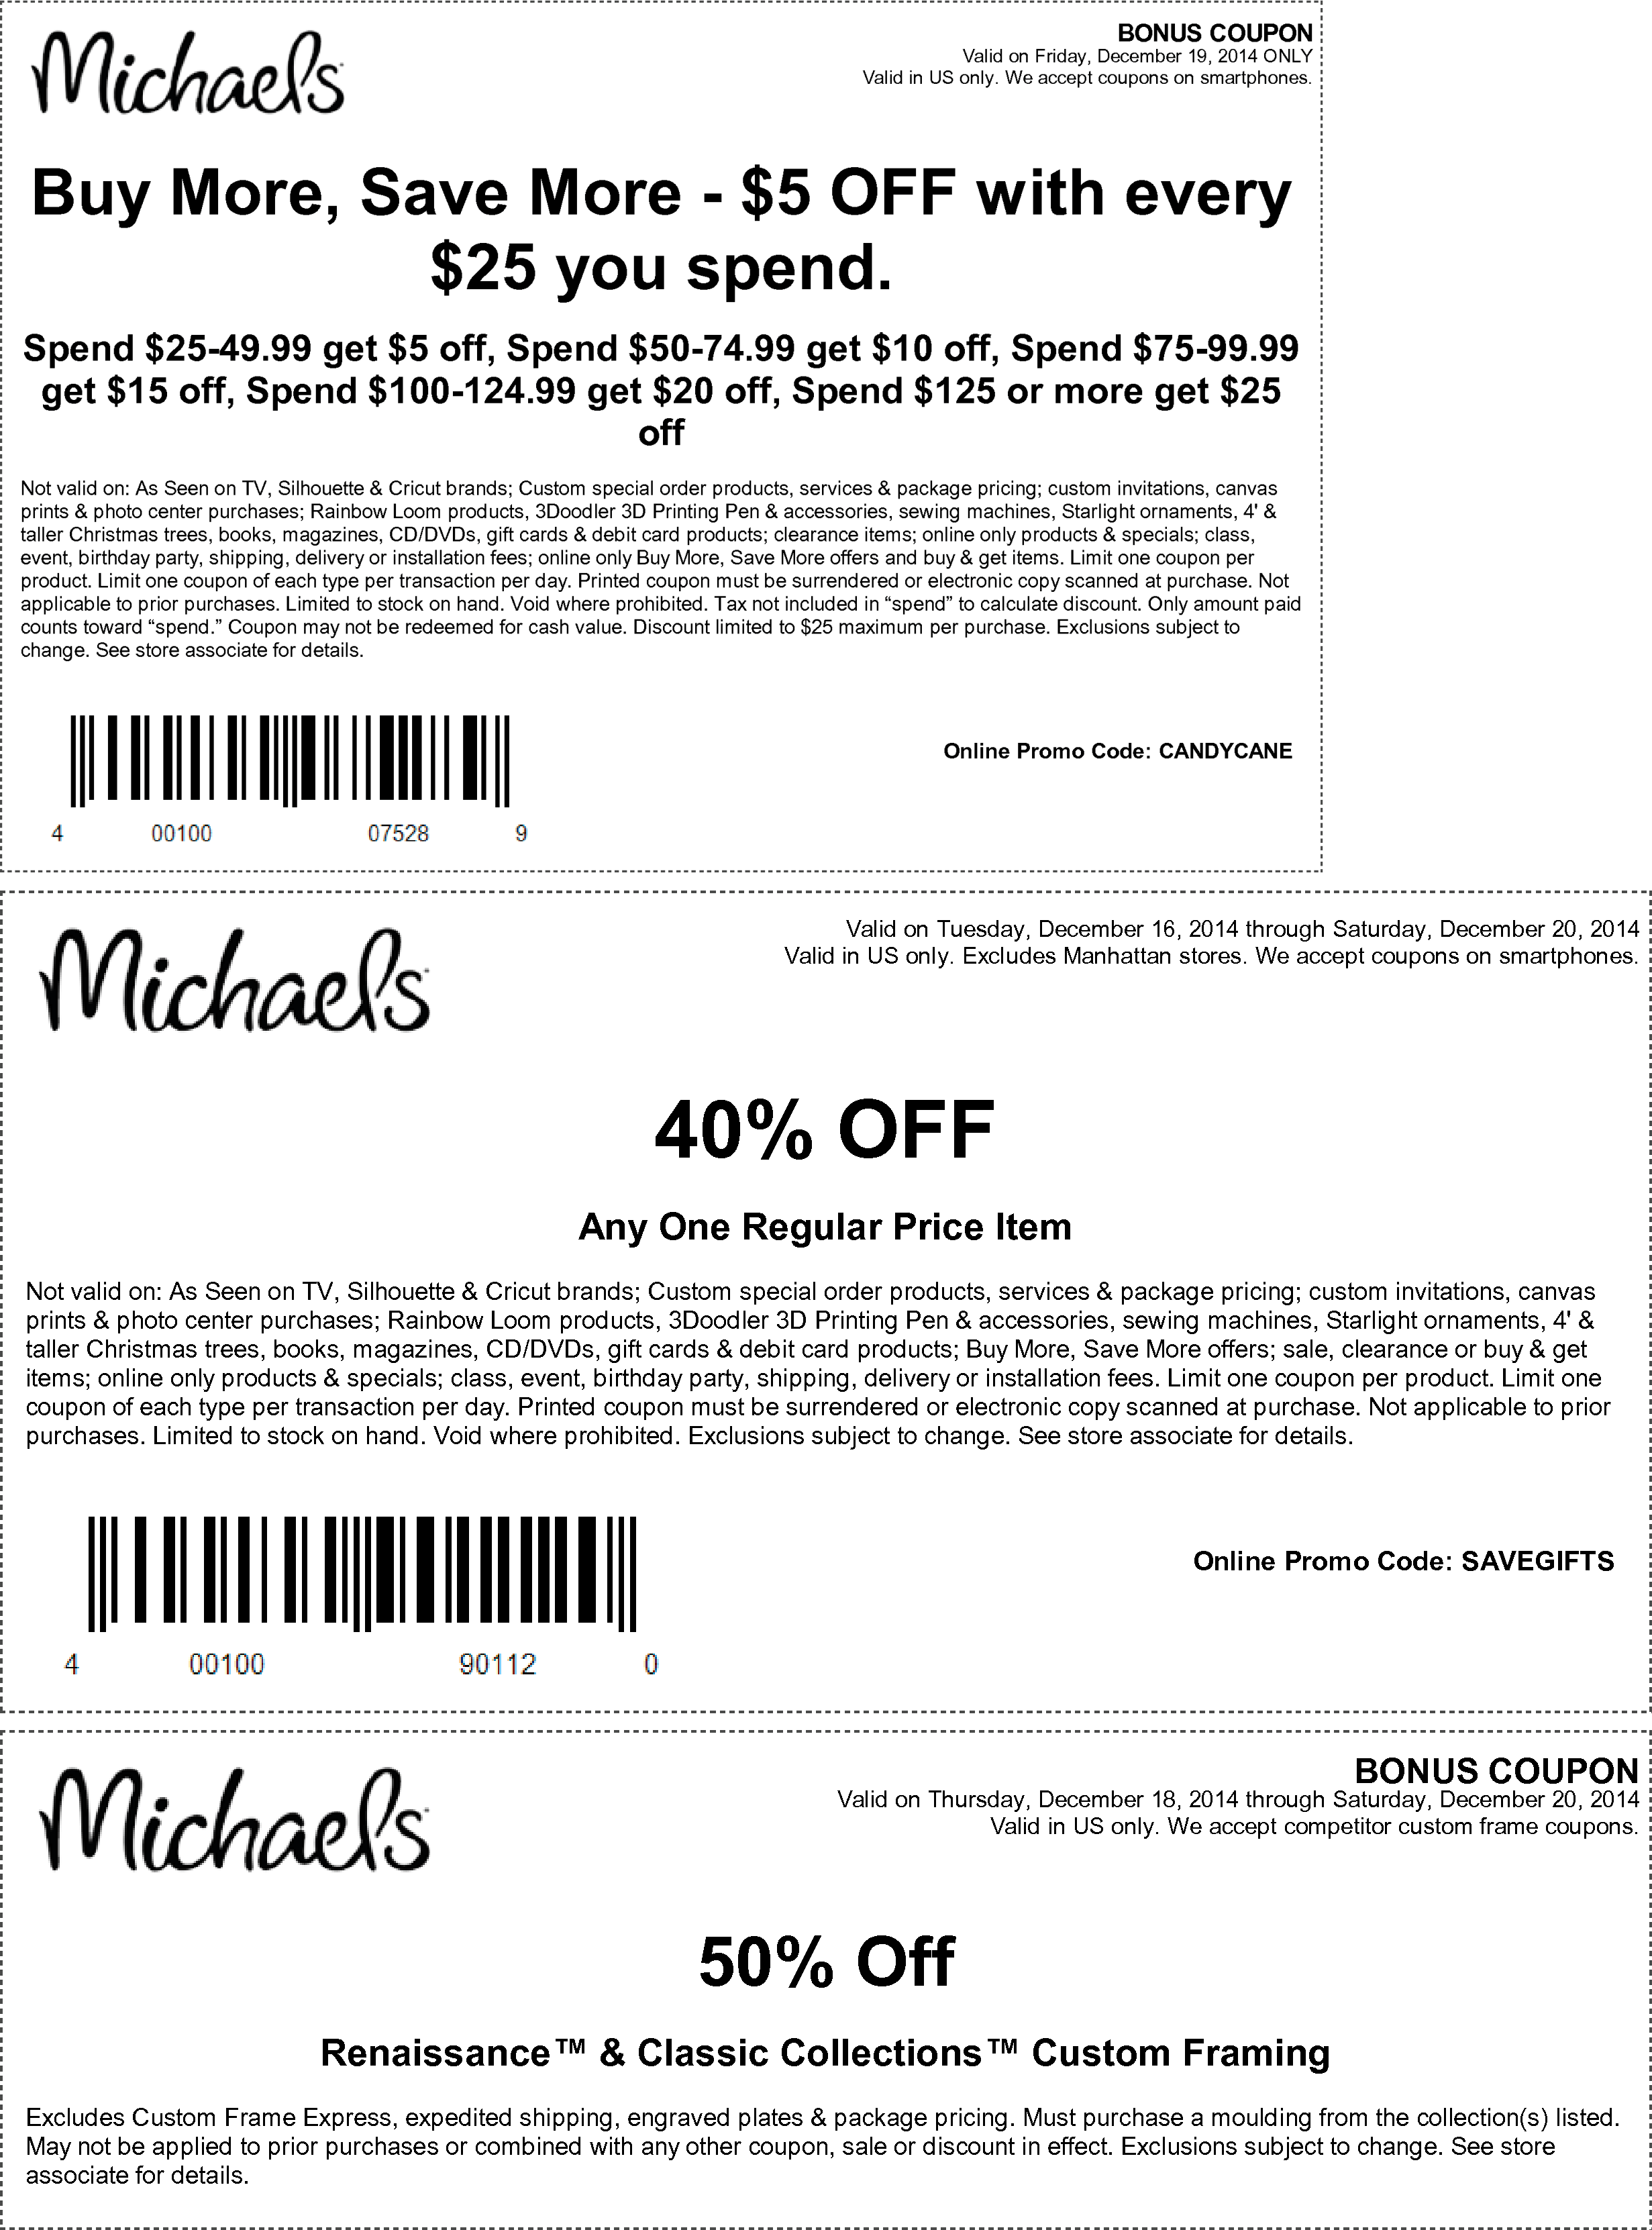 Michaels Coupon August 2019 $5 off every $25 today & more at Michaels, or online via promo code CANDYCANE